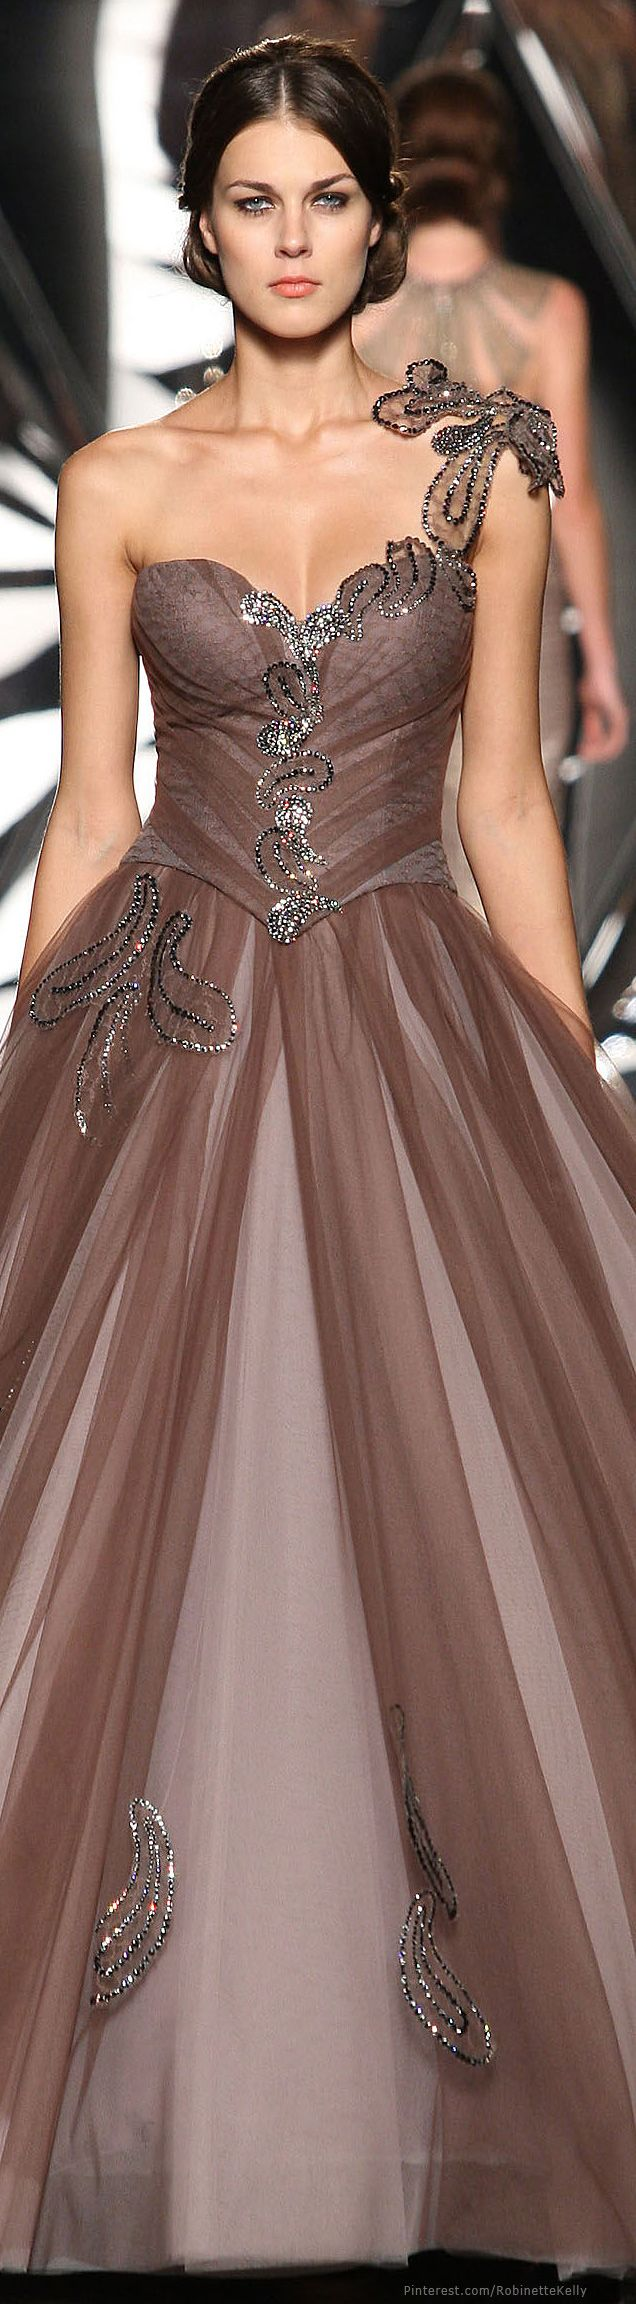 Mireille Dagher | Couture, F/W 2013-14 | Fashionista | Pinterest